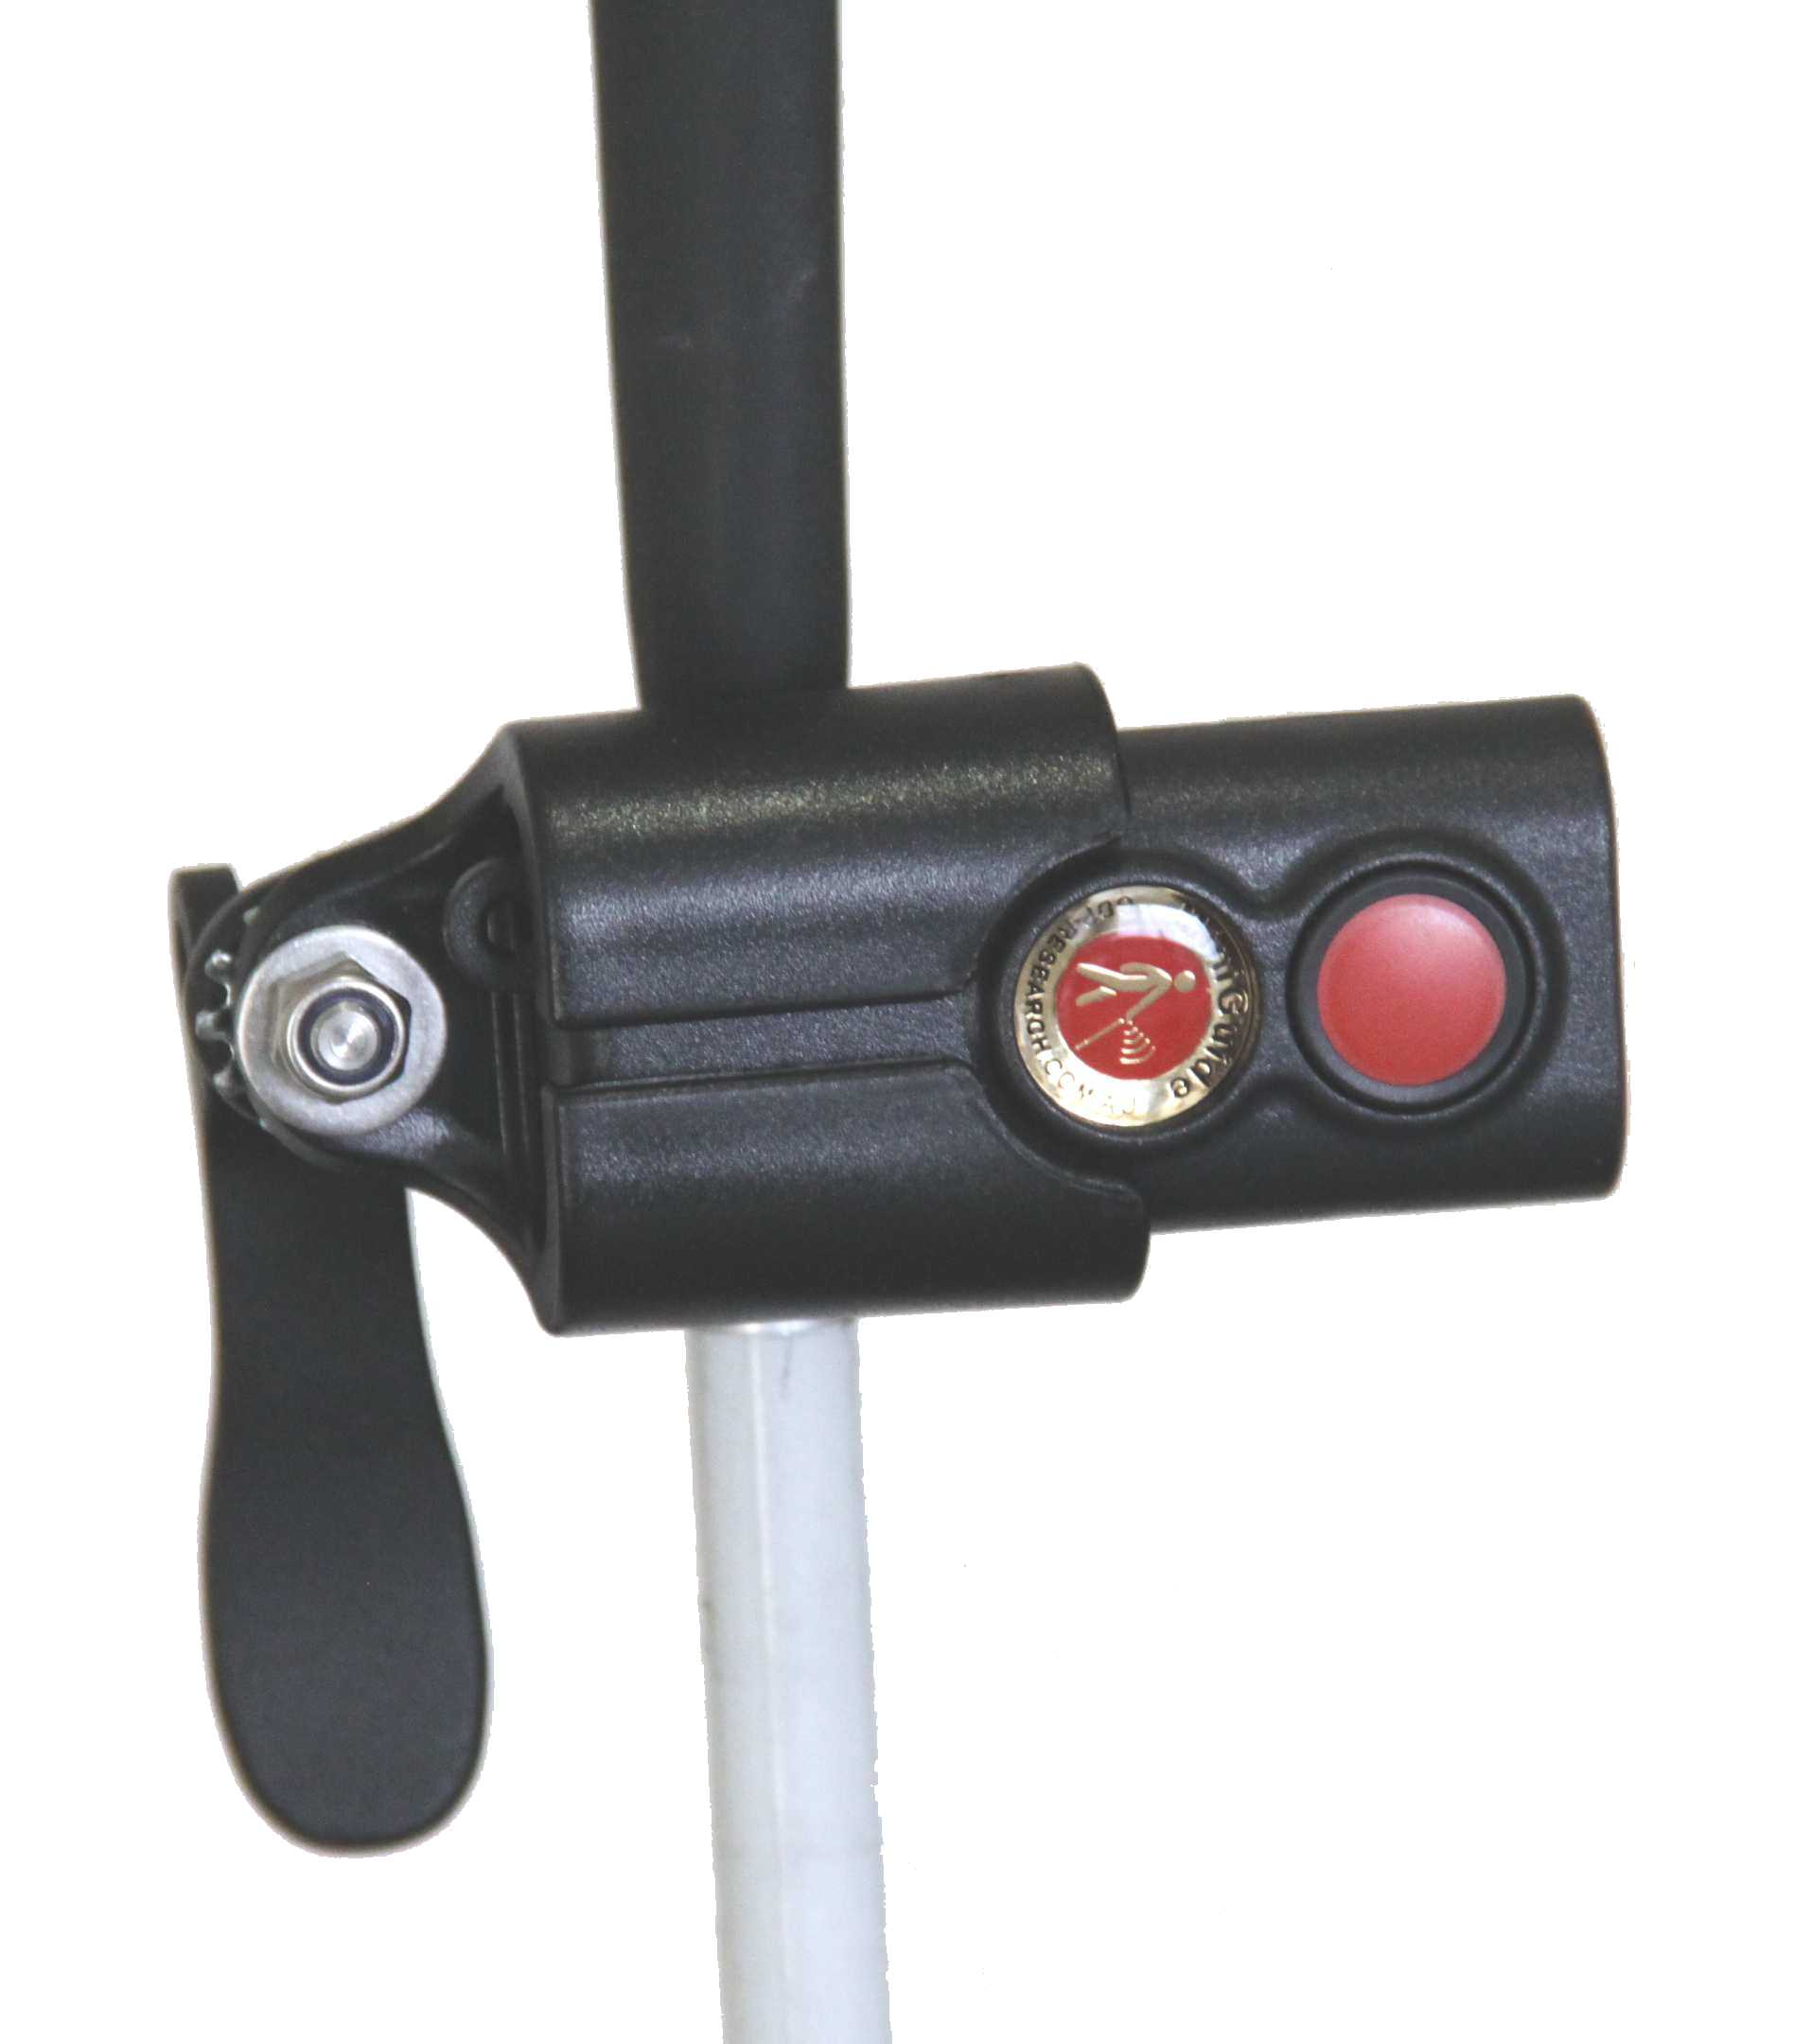 The Miniguide holder on a standard cane